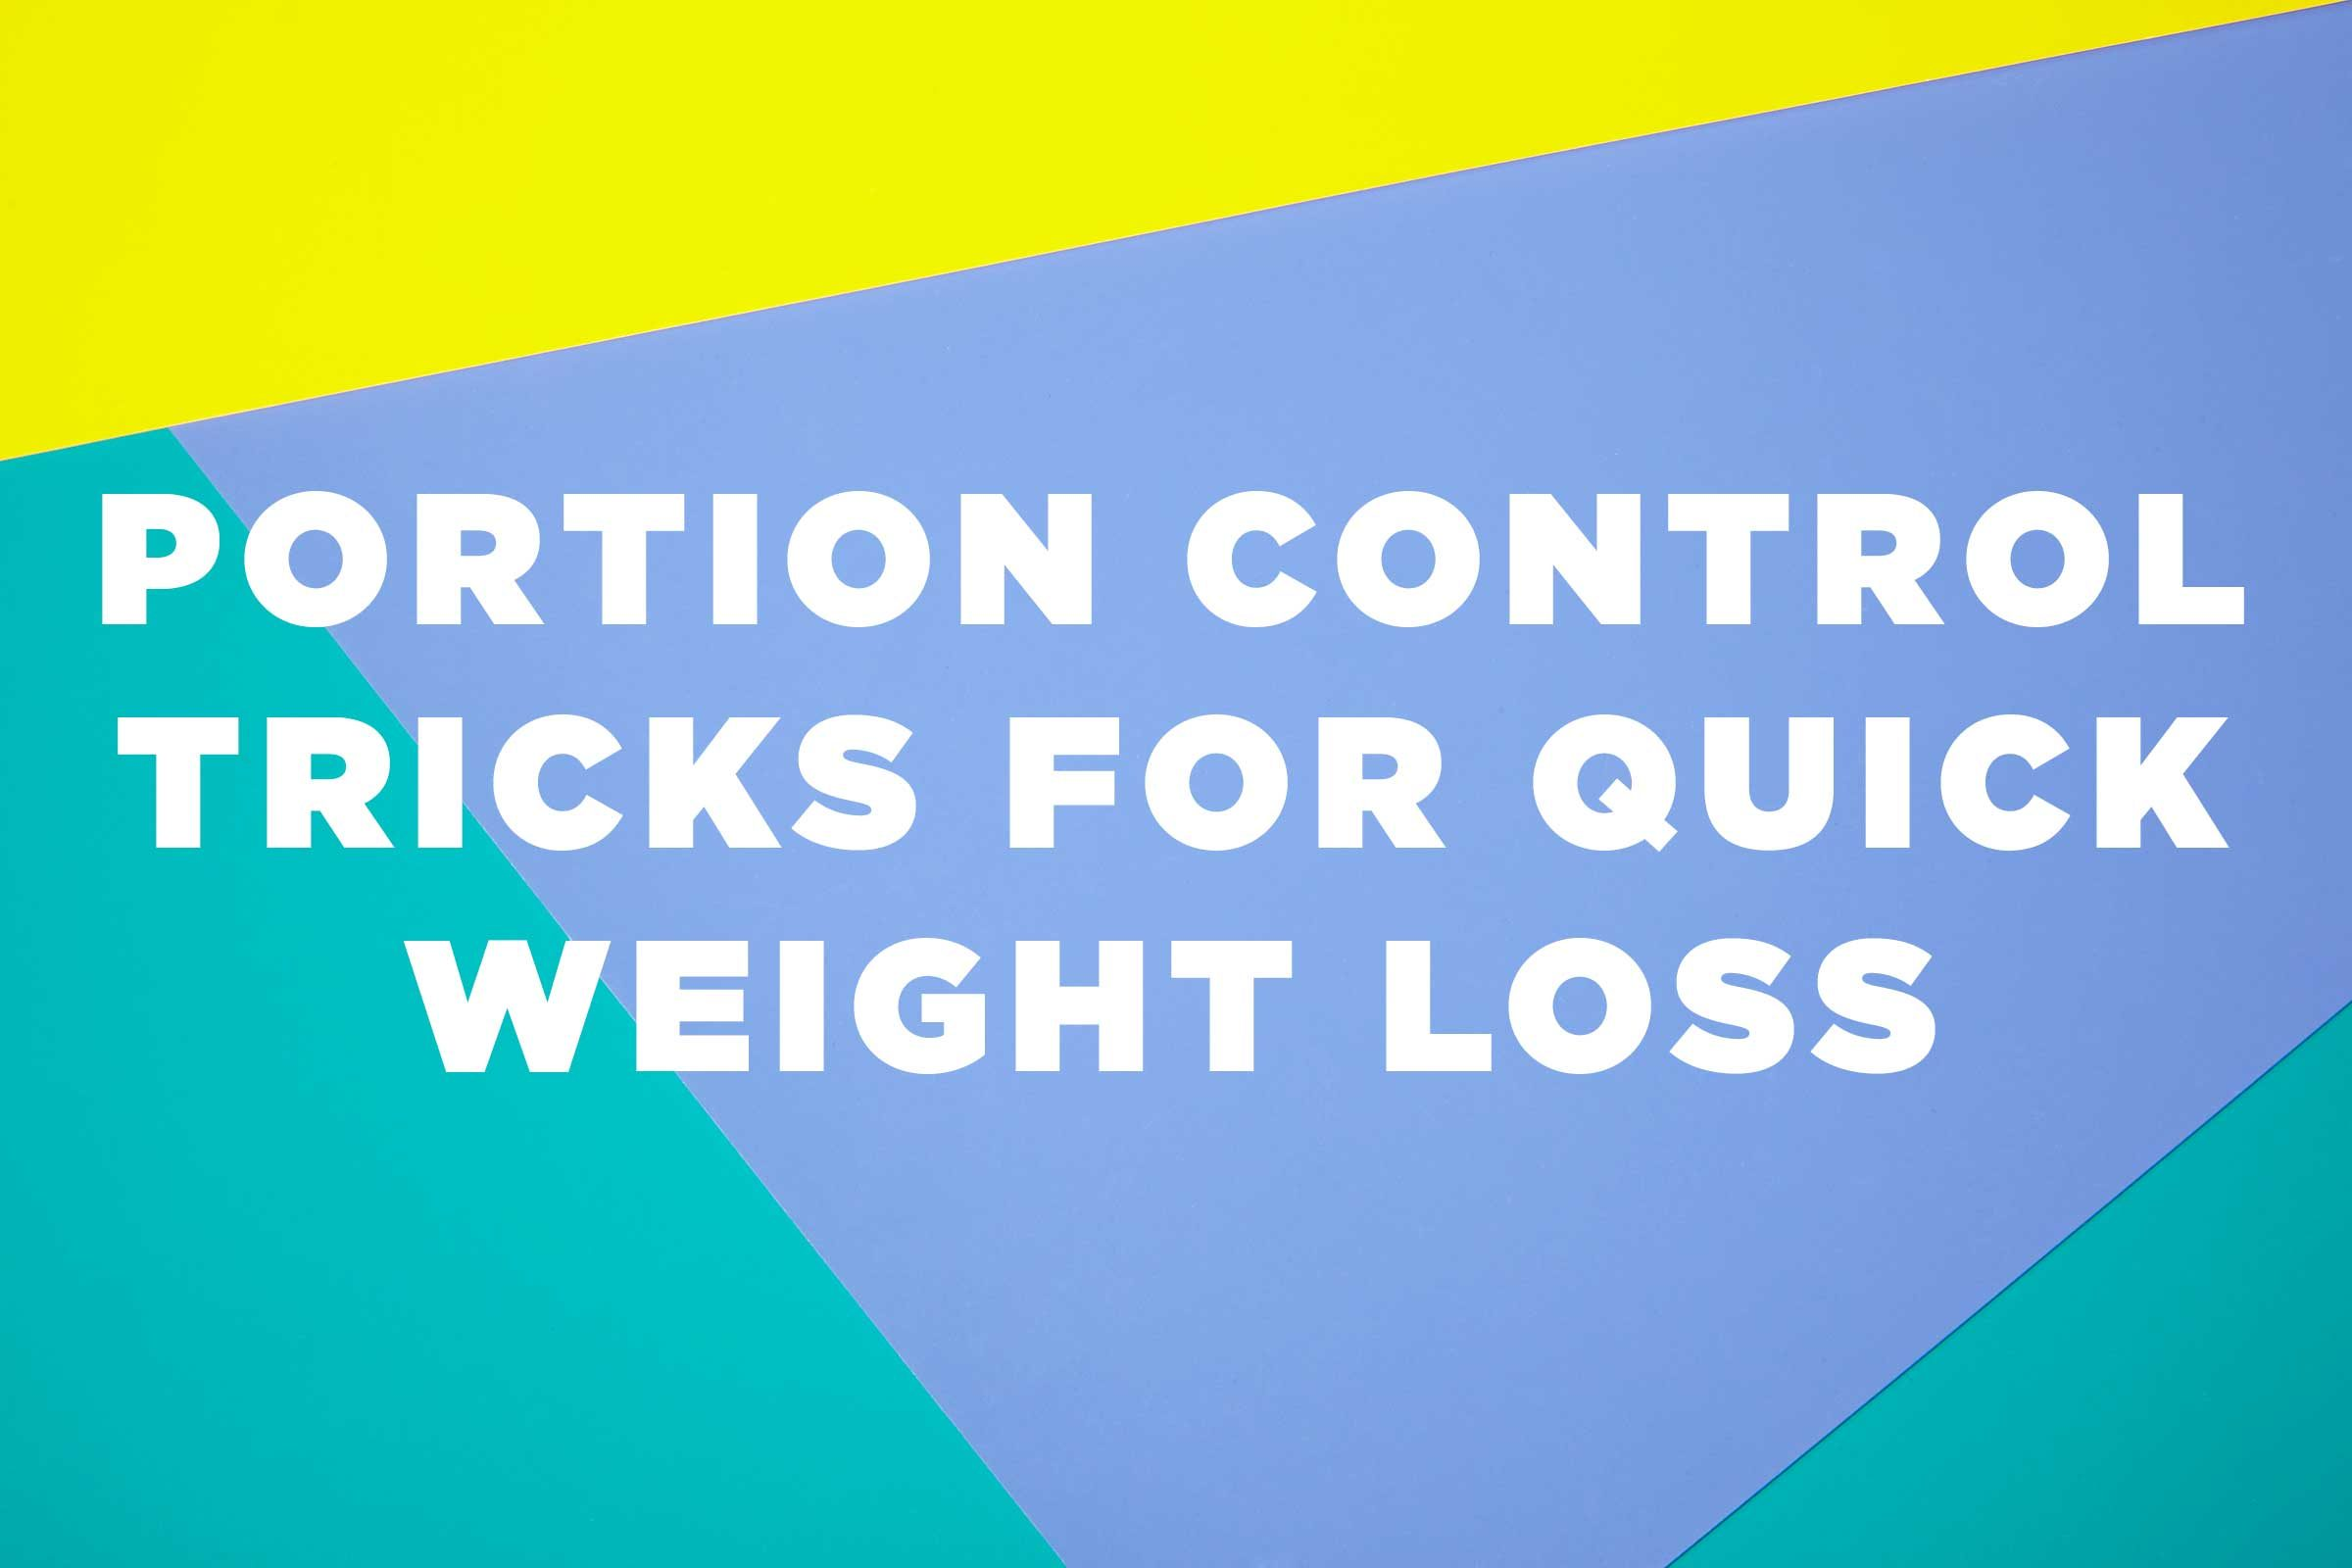 Control portion sizes for quick weight loss readers digest portion confusion calorie overload nvjuhfo Gallery